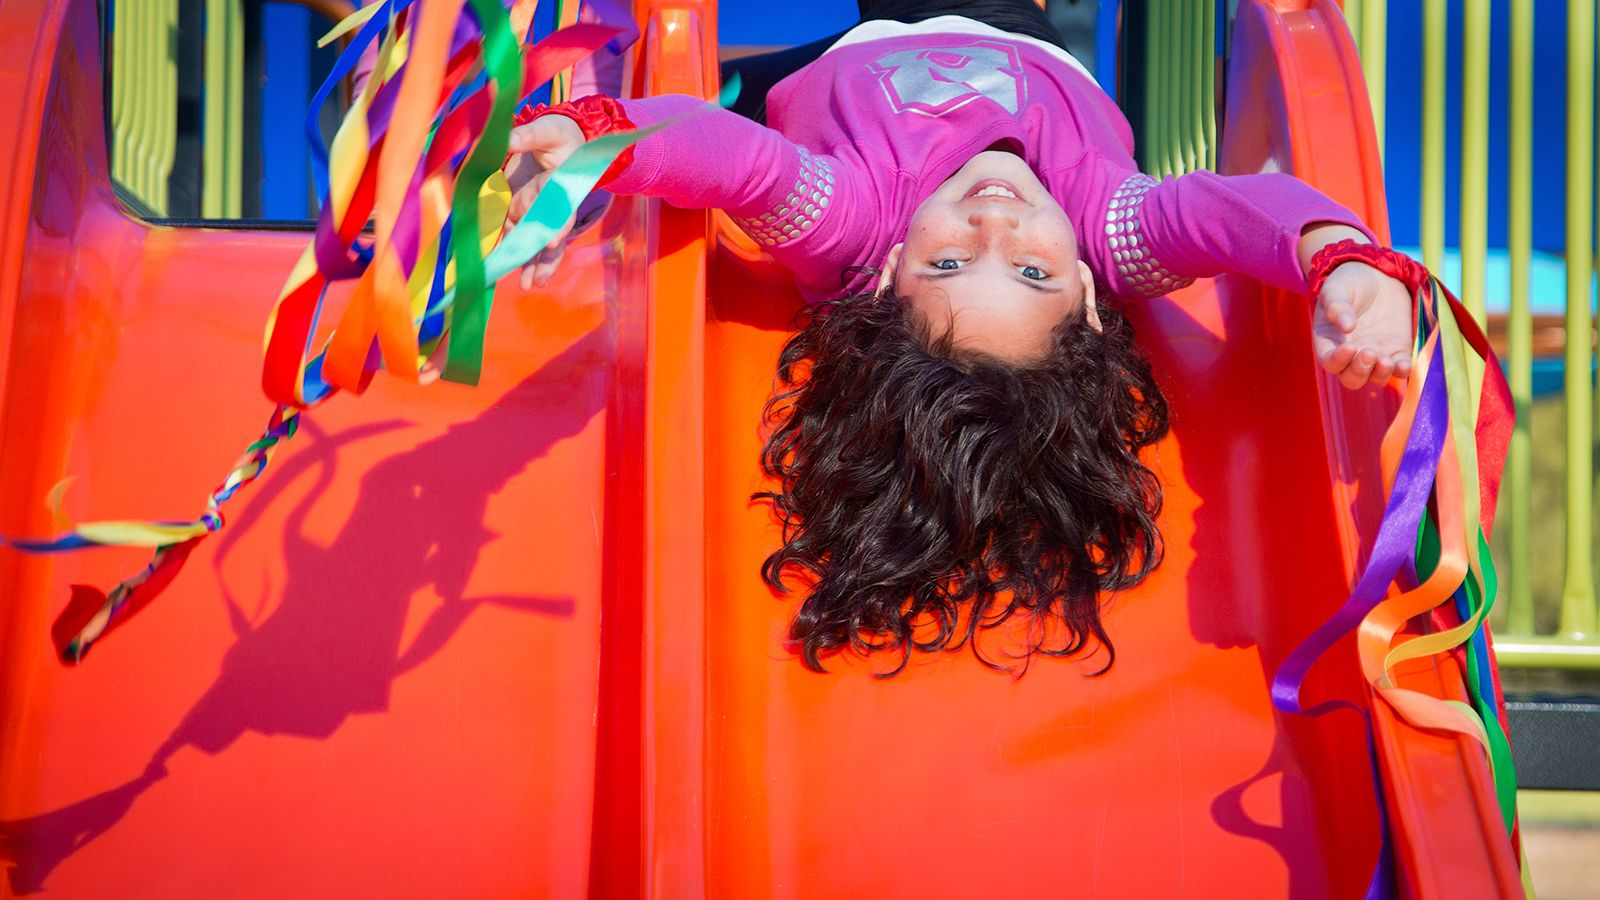 A young girl laying upside down at the top of a playground slide. banner image